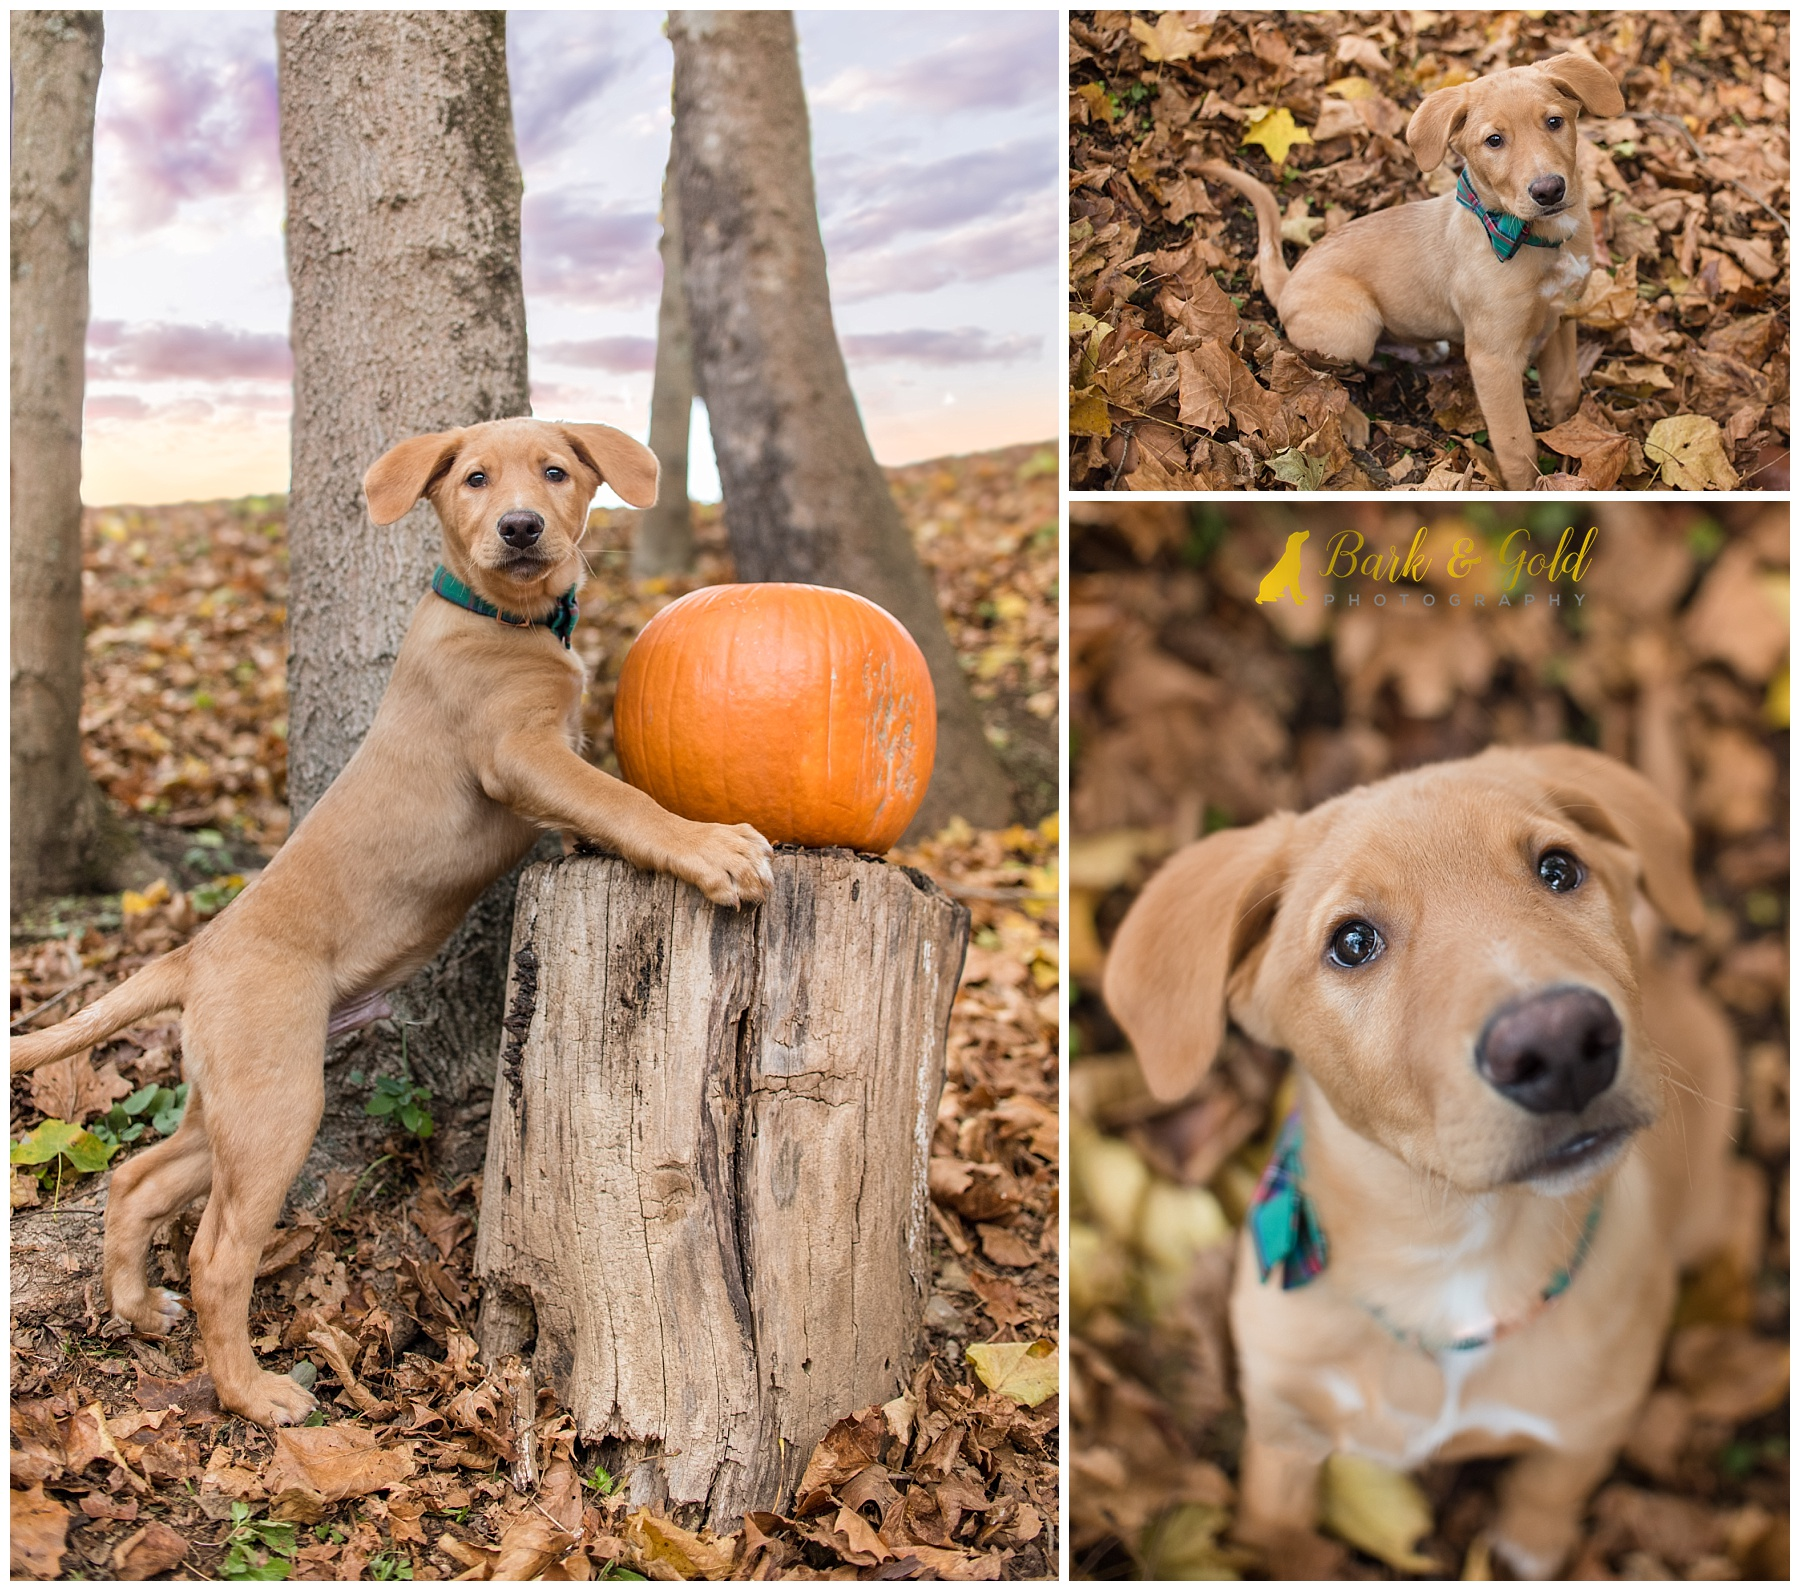 Brown puppy at Mingo Creek Park playing in fall leaves